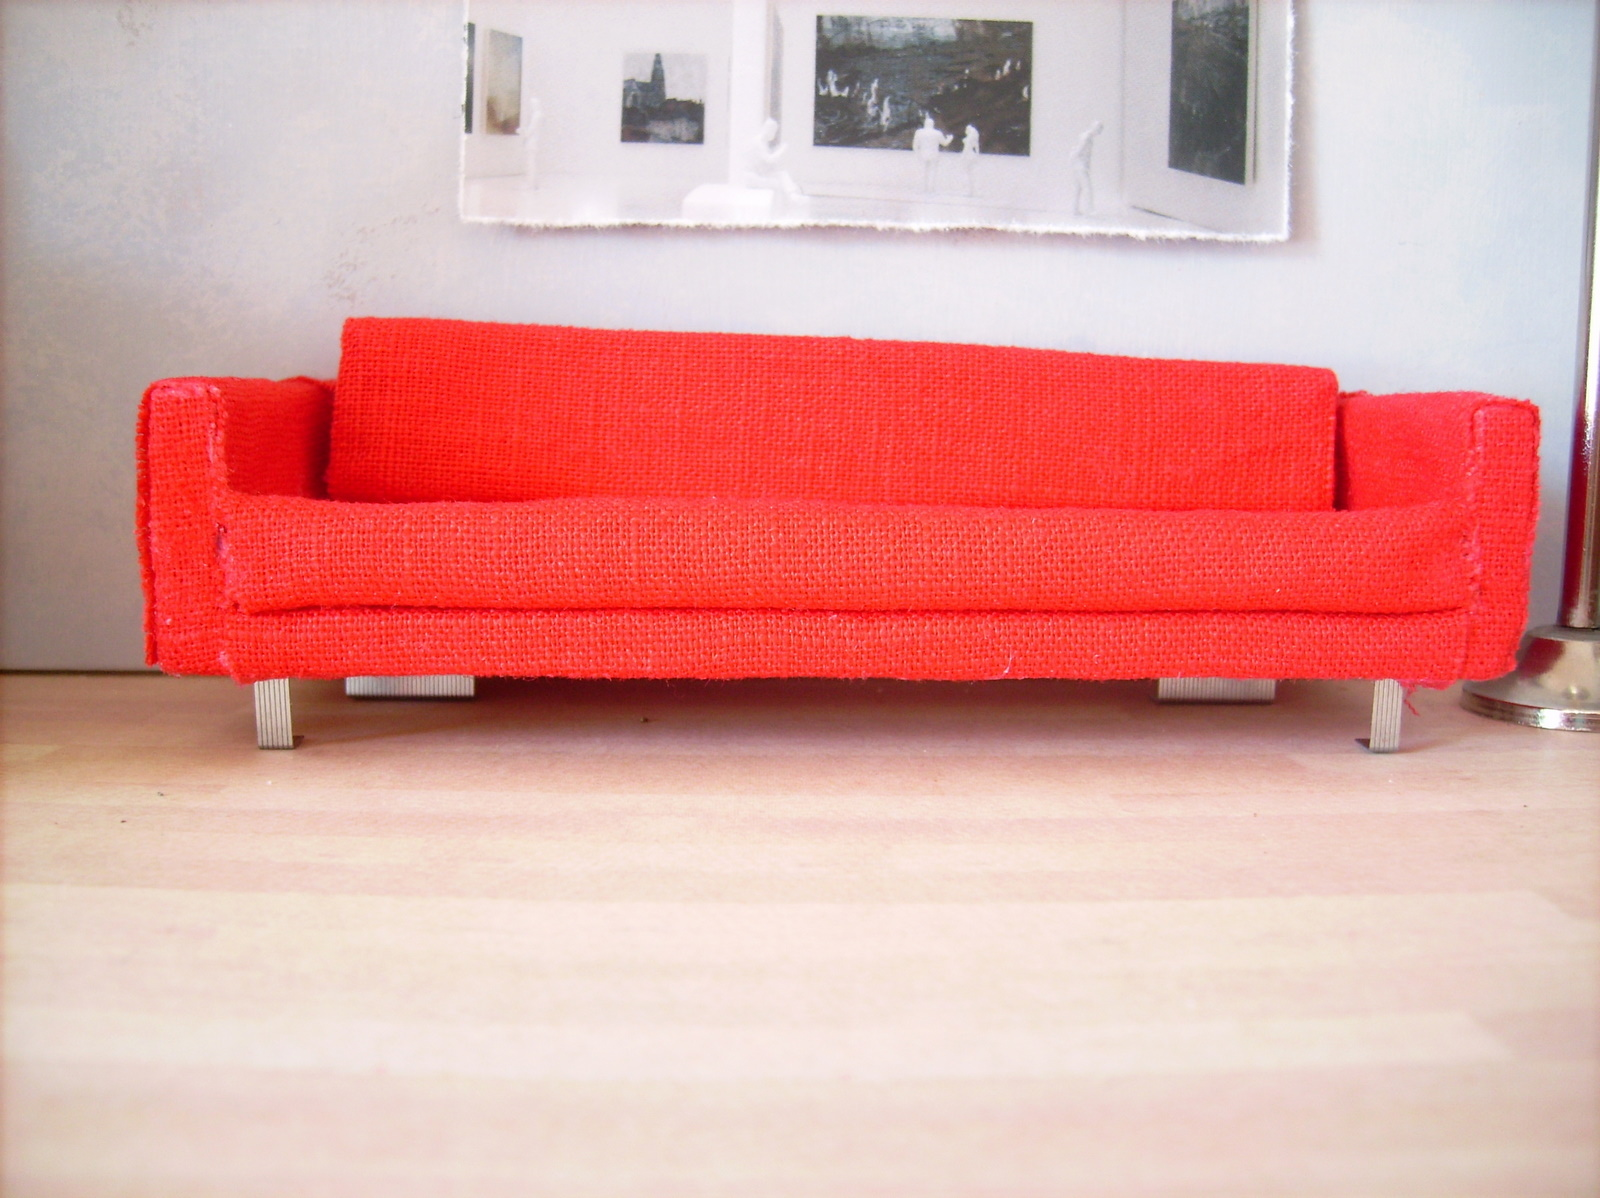 Raum F R Raum Das Rote Sofa The Red Sofa